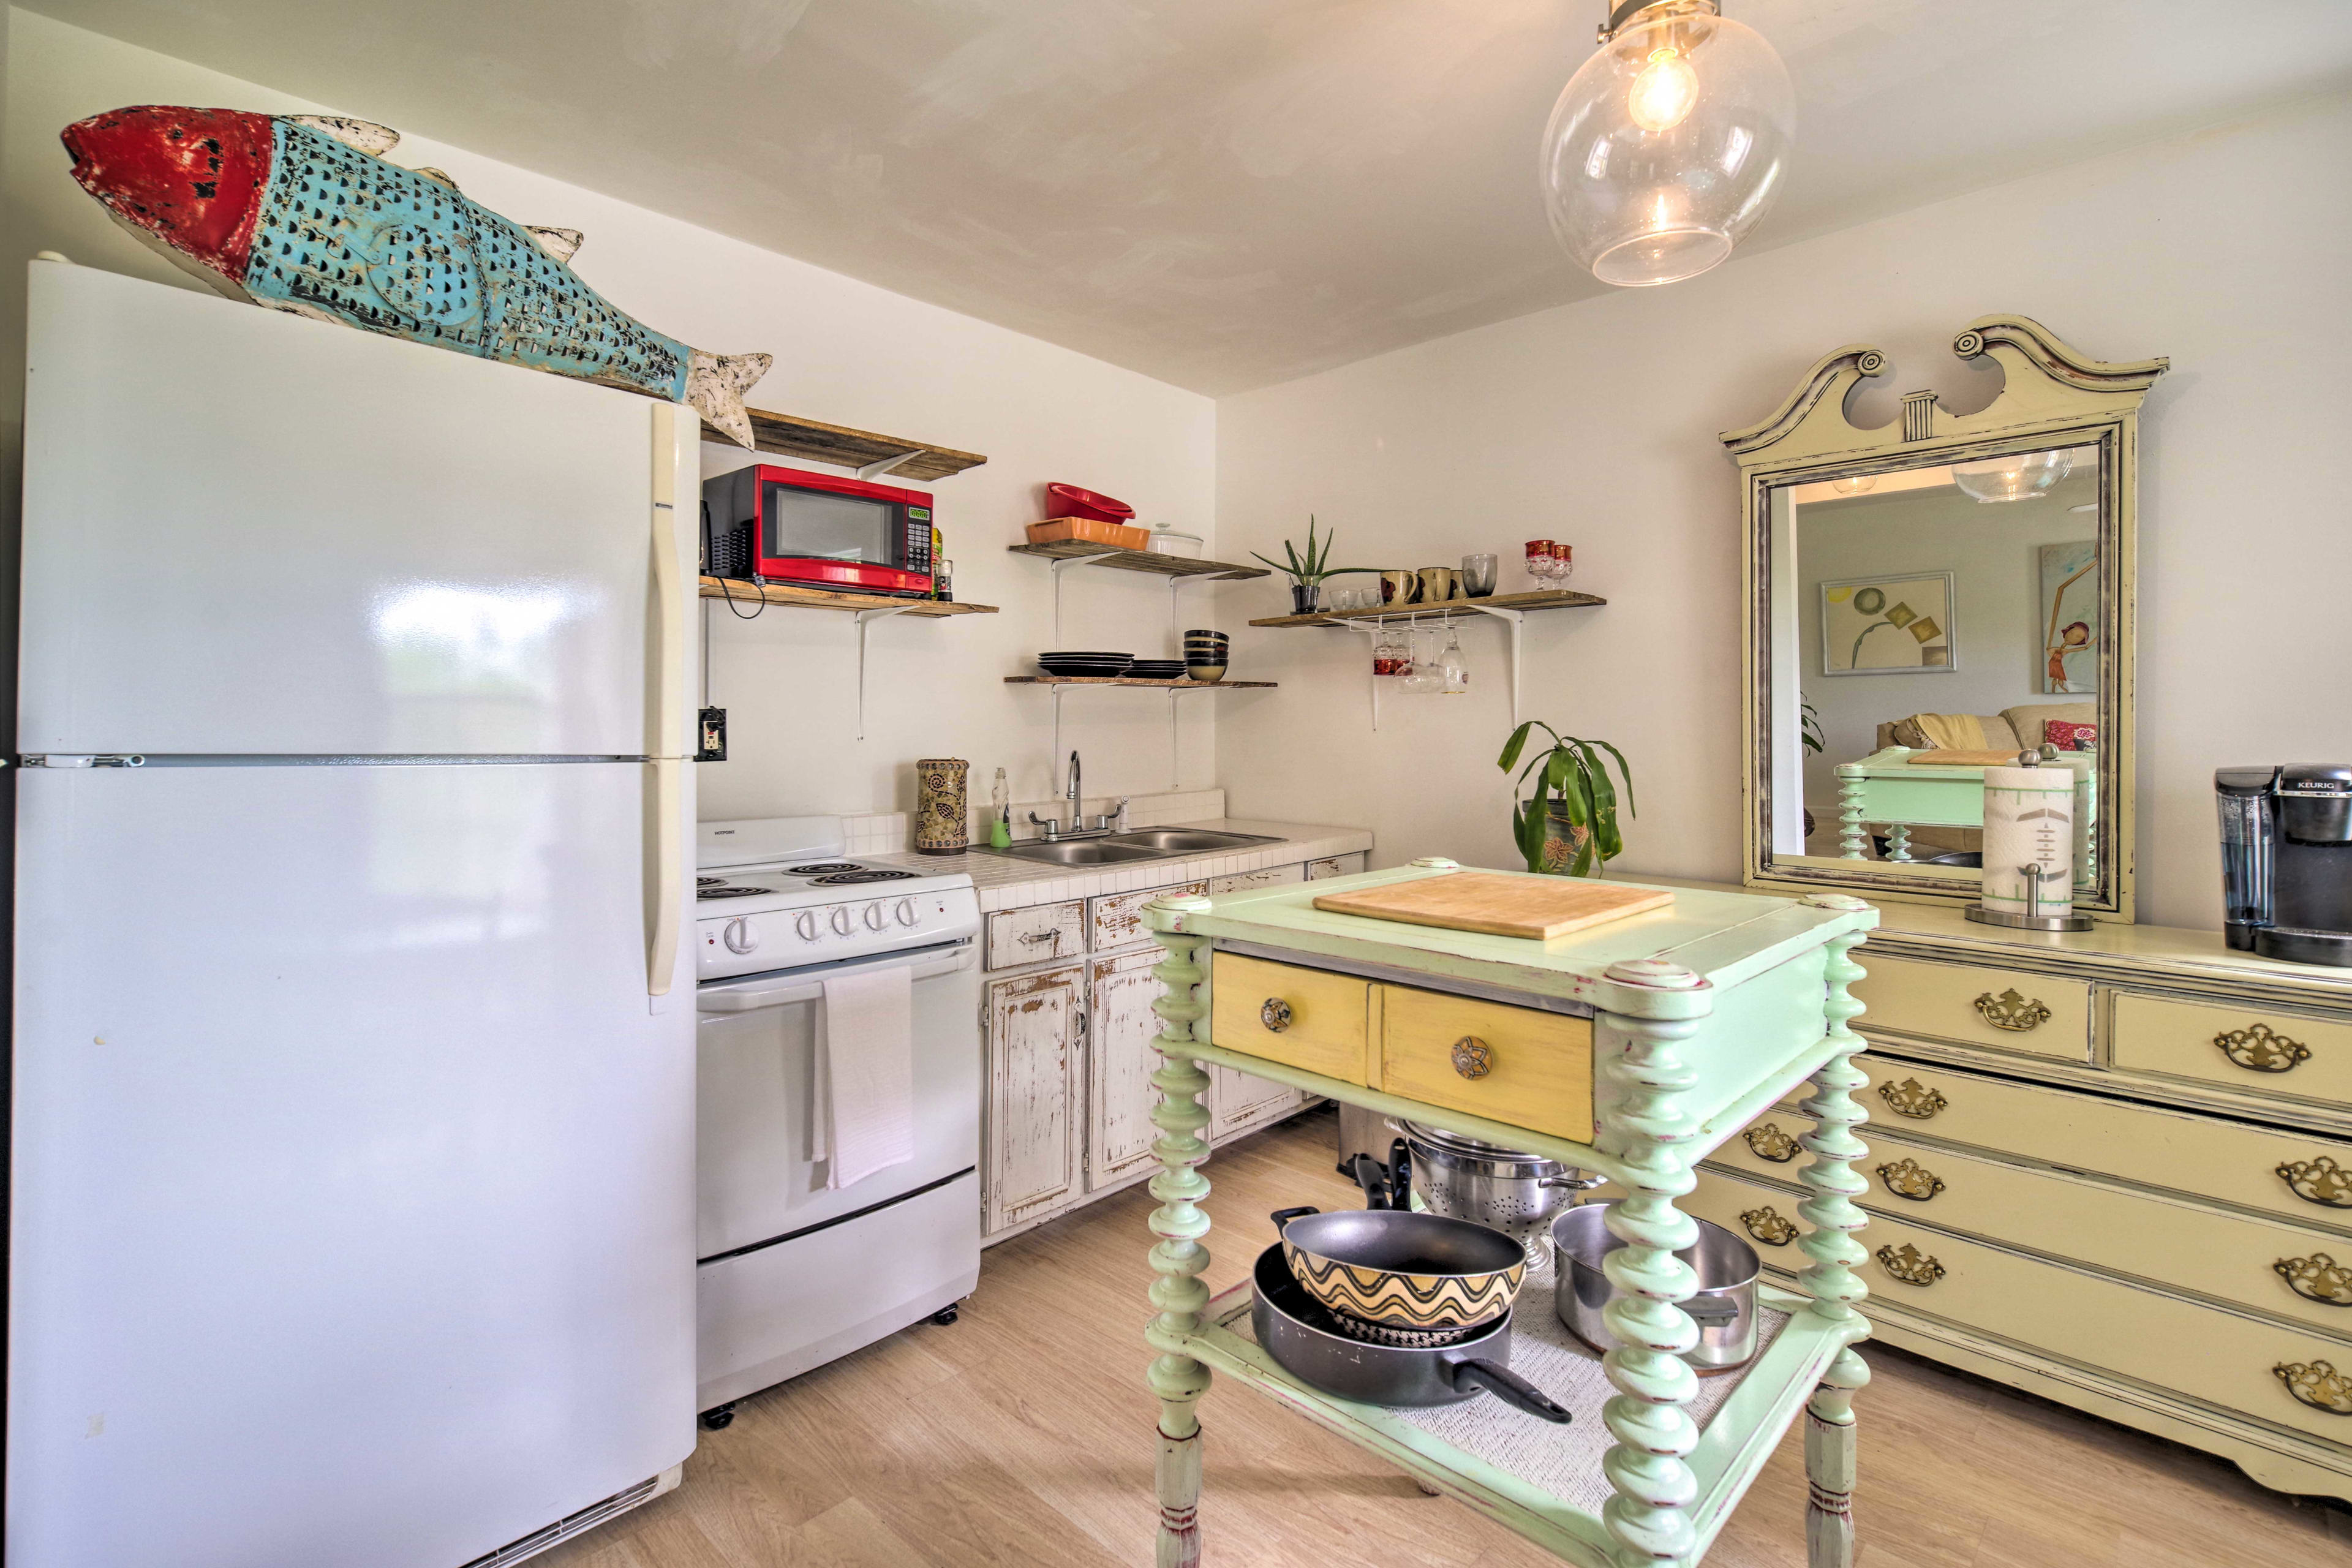 The kitchen is equipped with all appliances necessary.